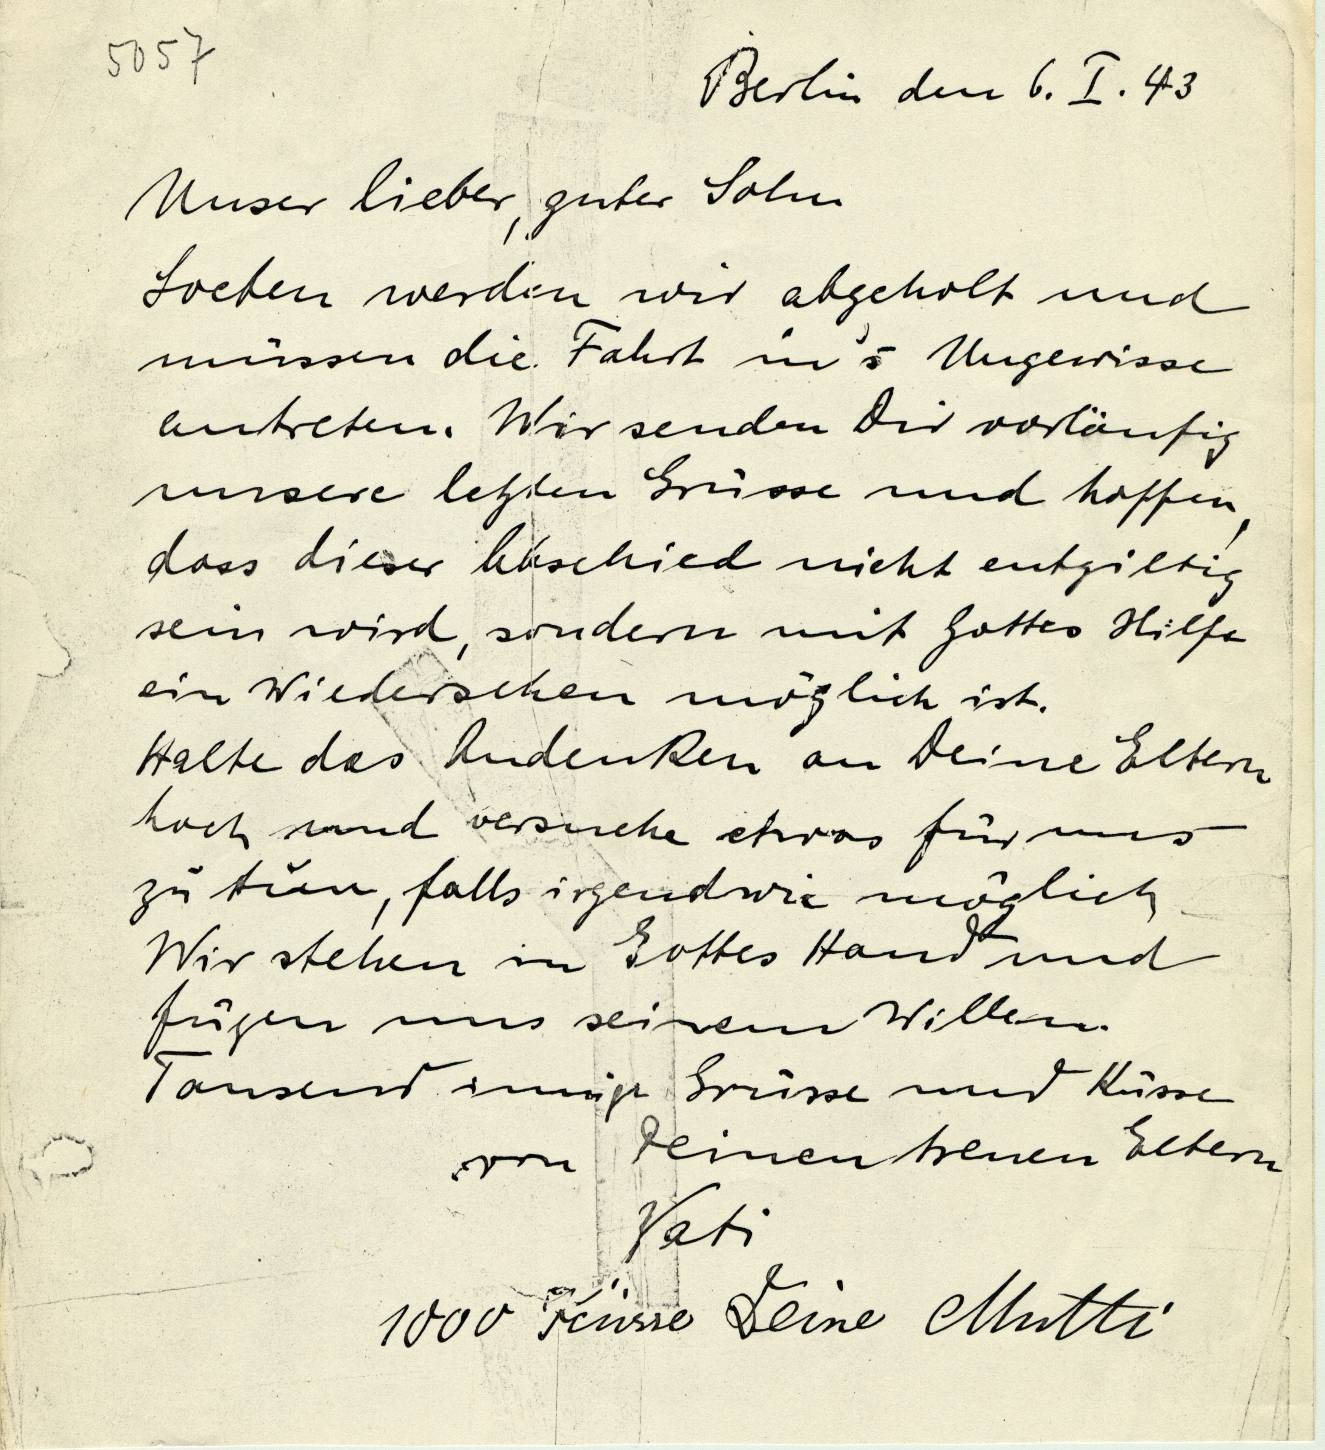 Last letter sent to Lothar Lewin in the internment camp of Sherbrooke (Canada) from his parents in Berlin (Germany), January 6th 43. Language: German.